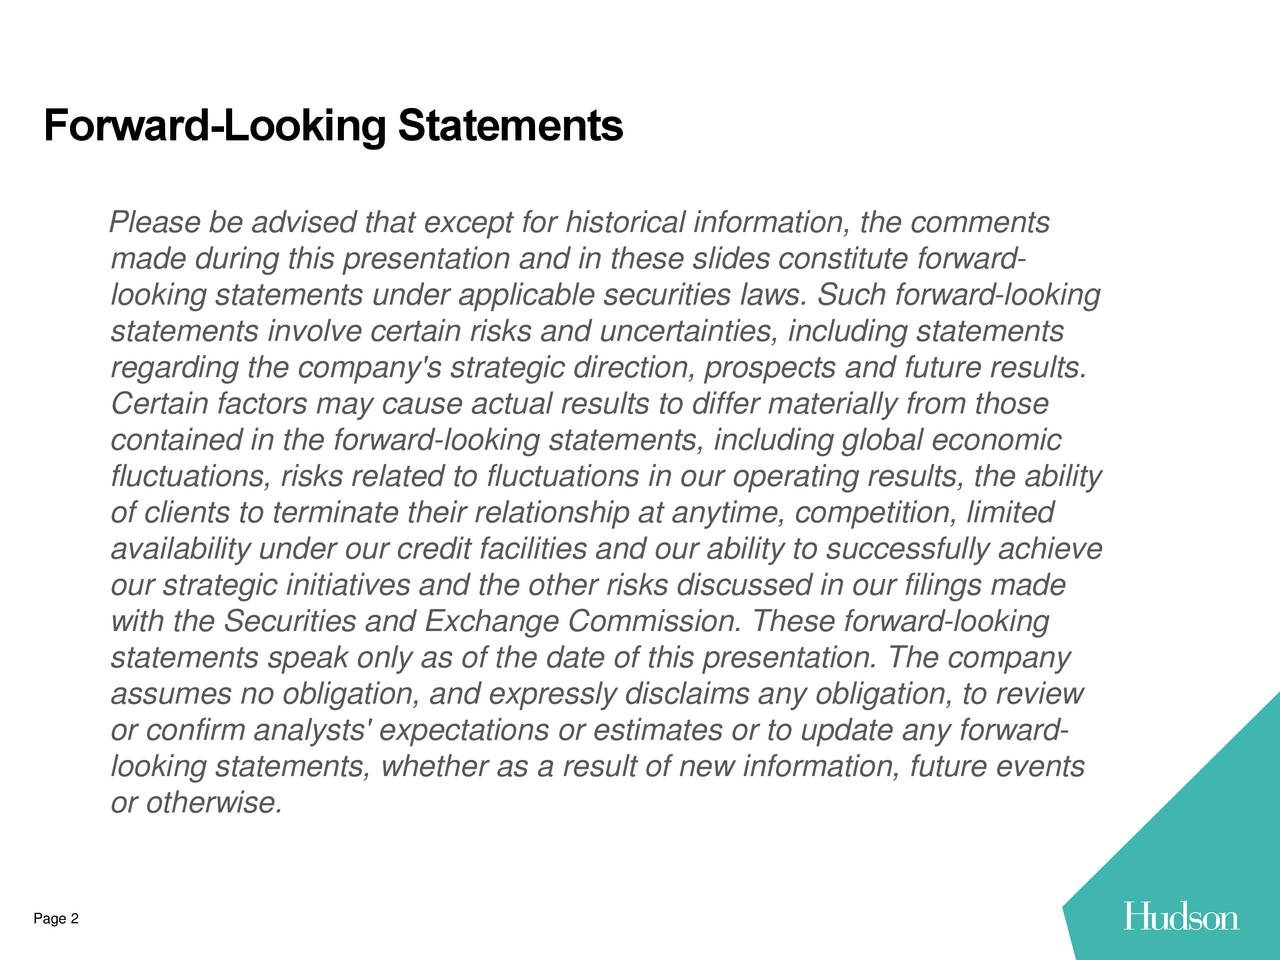 Please be advised that except for historical information, the comments made during this presentation and in these slides constitute forward- looking statements under applicable securities laws. Such forward-looking statements involve certain risks and uncertainties, including statements regarding the company's strategic direction, prospects and future results. Certain factors may cause actual results to differ materially from those contained in the forward-looking statements, including global economic fluctuations, risks related to fluctuations in our operating results, the ability of clients to terminate their relationship at anytime, competition, limited availability under our credit facilities and our ability to successfully achieve our strategic initiatives and the other risks discussed in our filings made with the Securities and Exchange Commission. These forward-looking statements speak only as of the date of this presentation. The company assumes no obligation, and expressly disclaims any obligation, to review or confirm analysts' expectations or estimates or to update any forward- looking statements, whether as a result of new information, future events or otherwise. Page 2